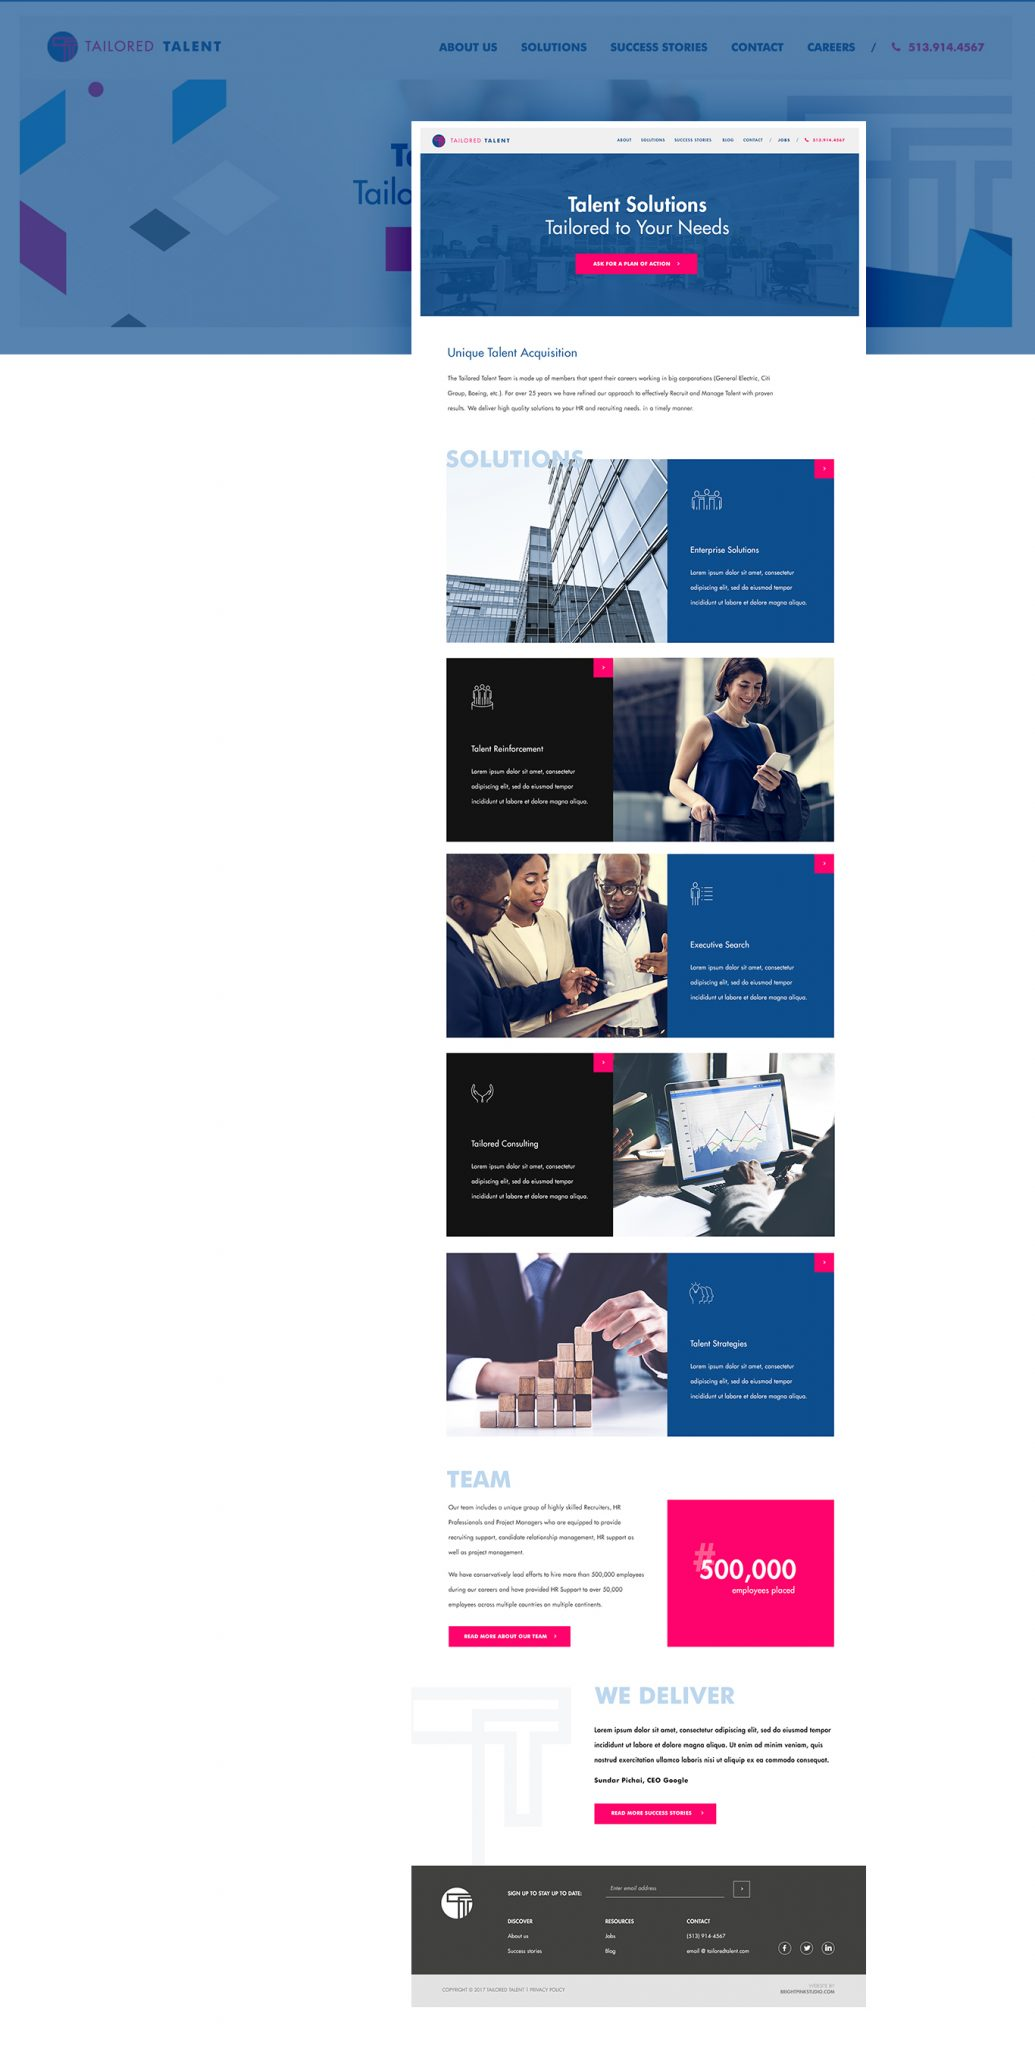 Medium service website design for Tailored Talent